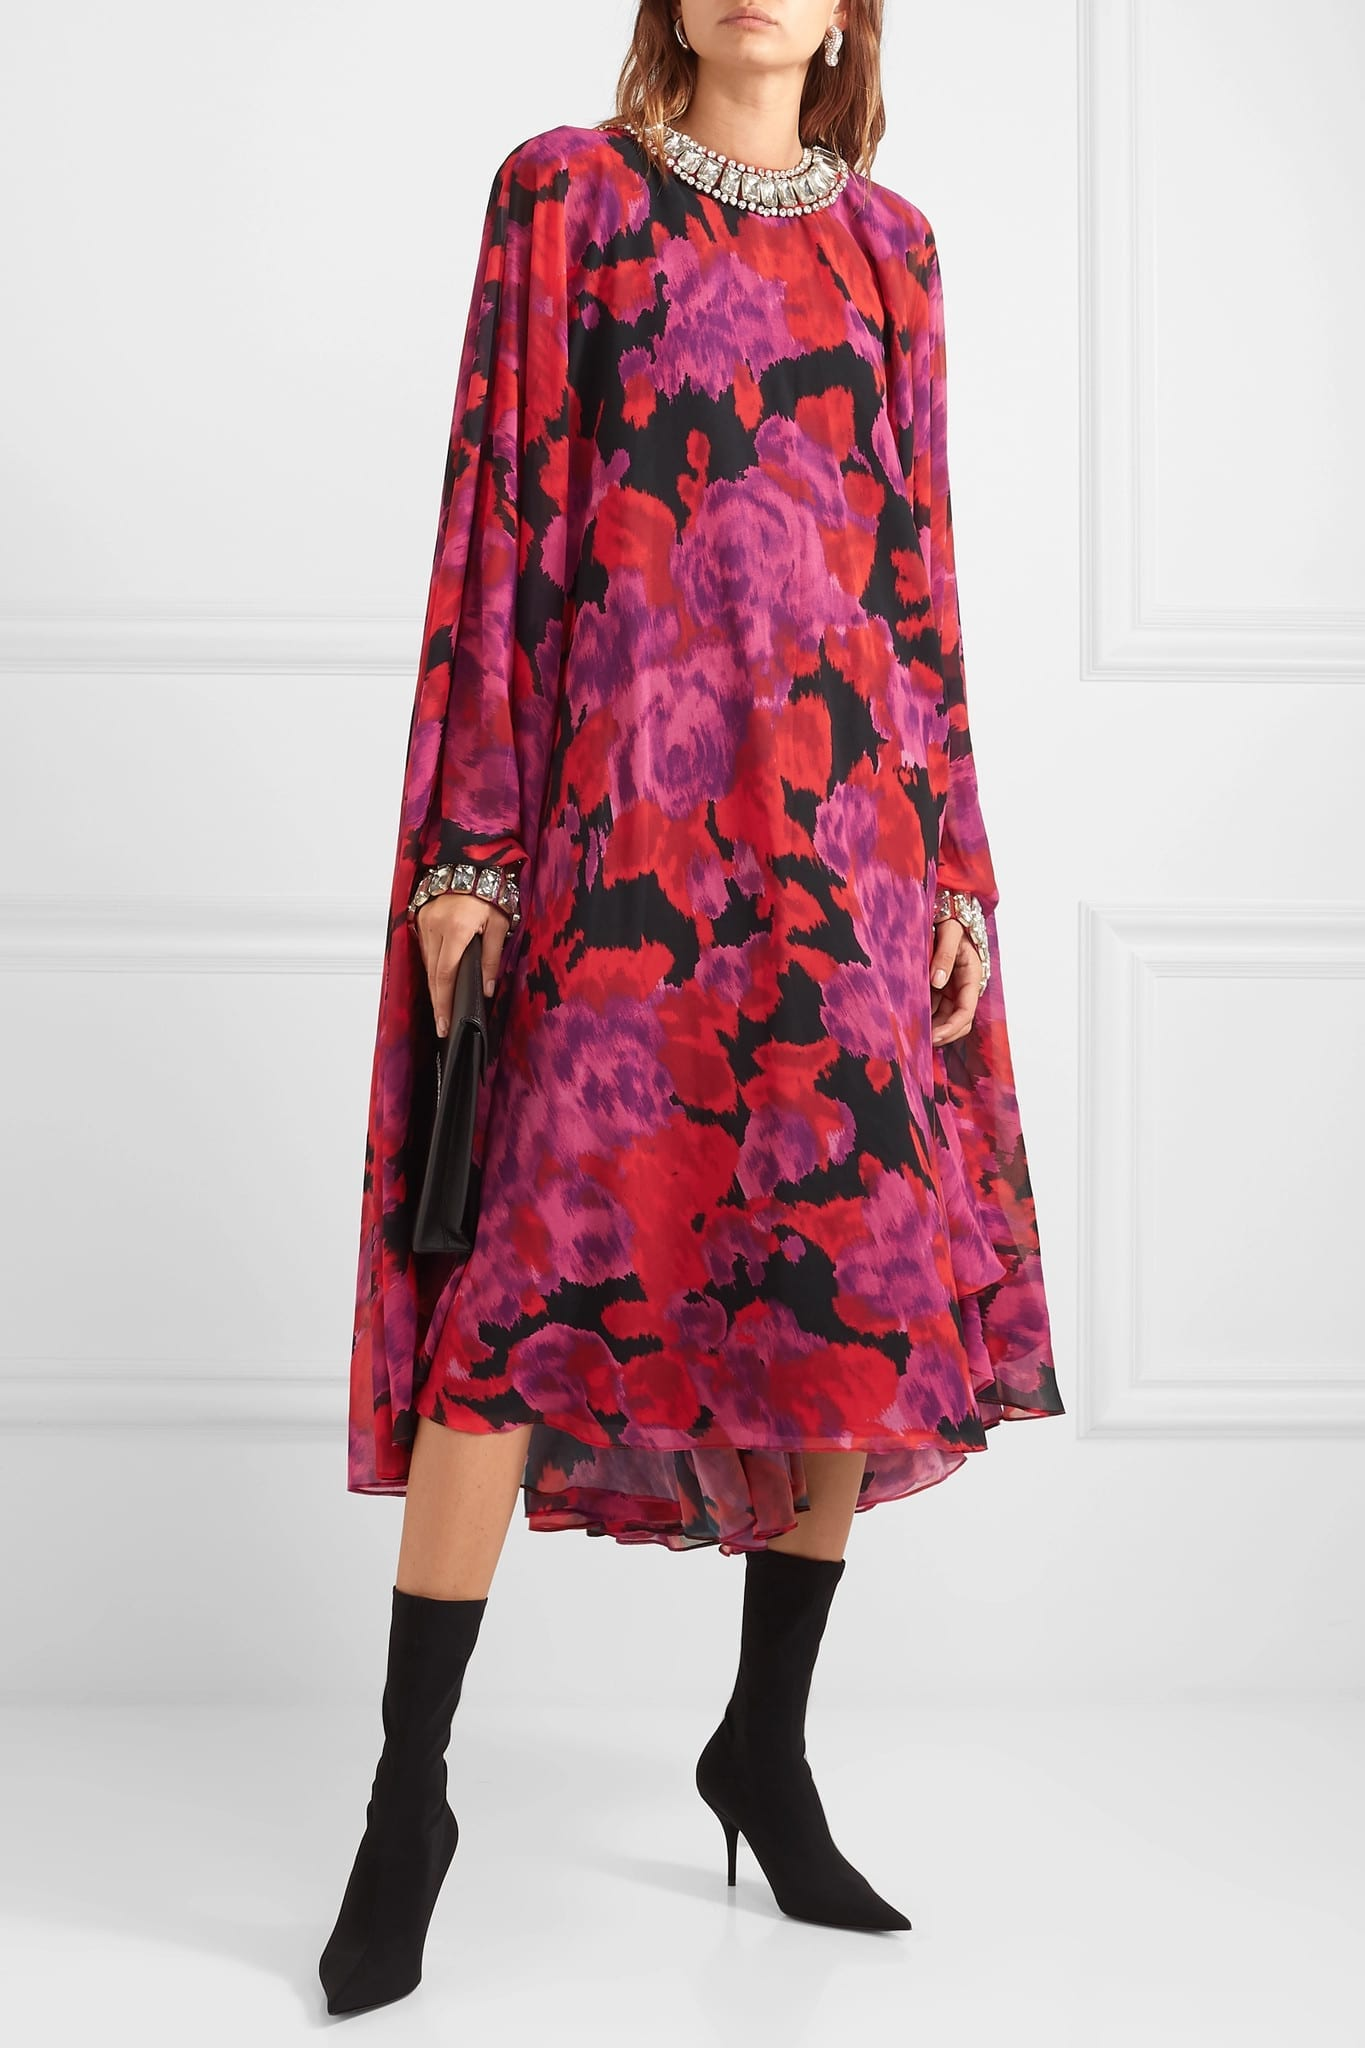 RICHARD QUINN Cape-effect Crystal-embellished Floral-print Chiffon Gown